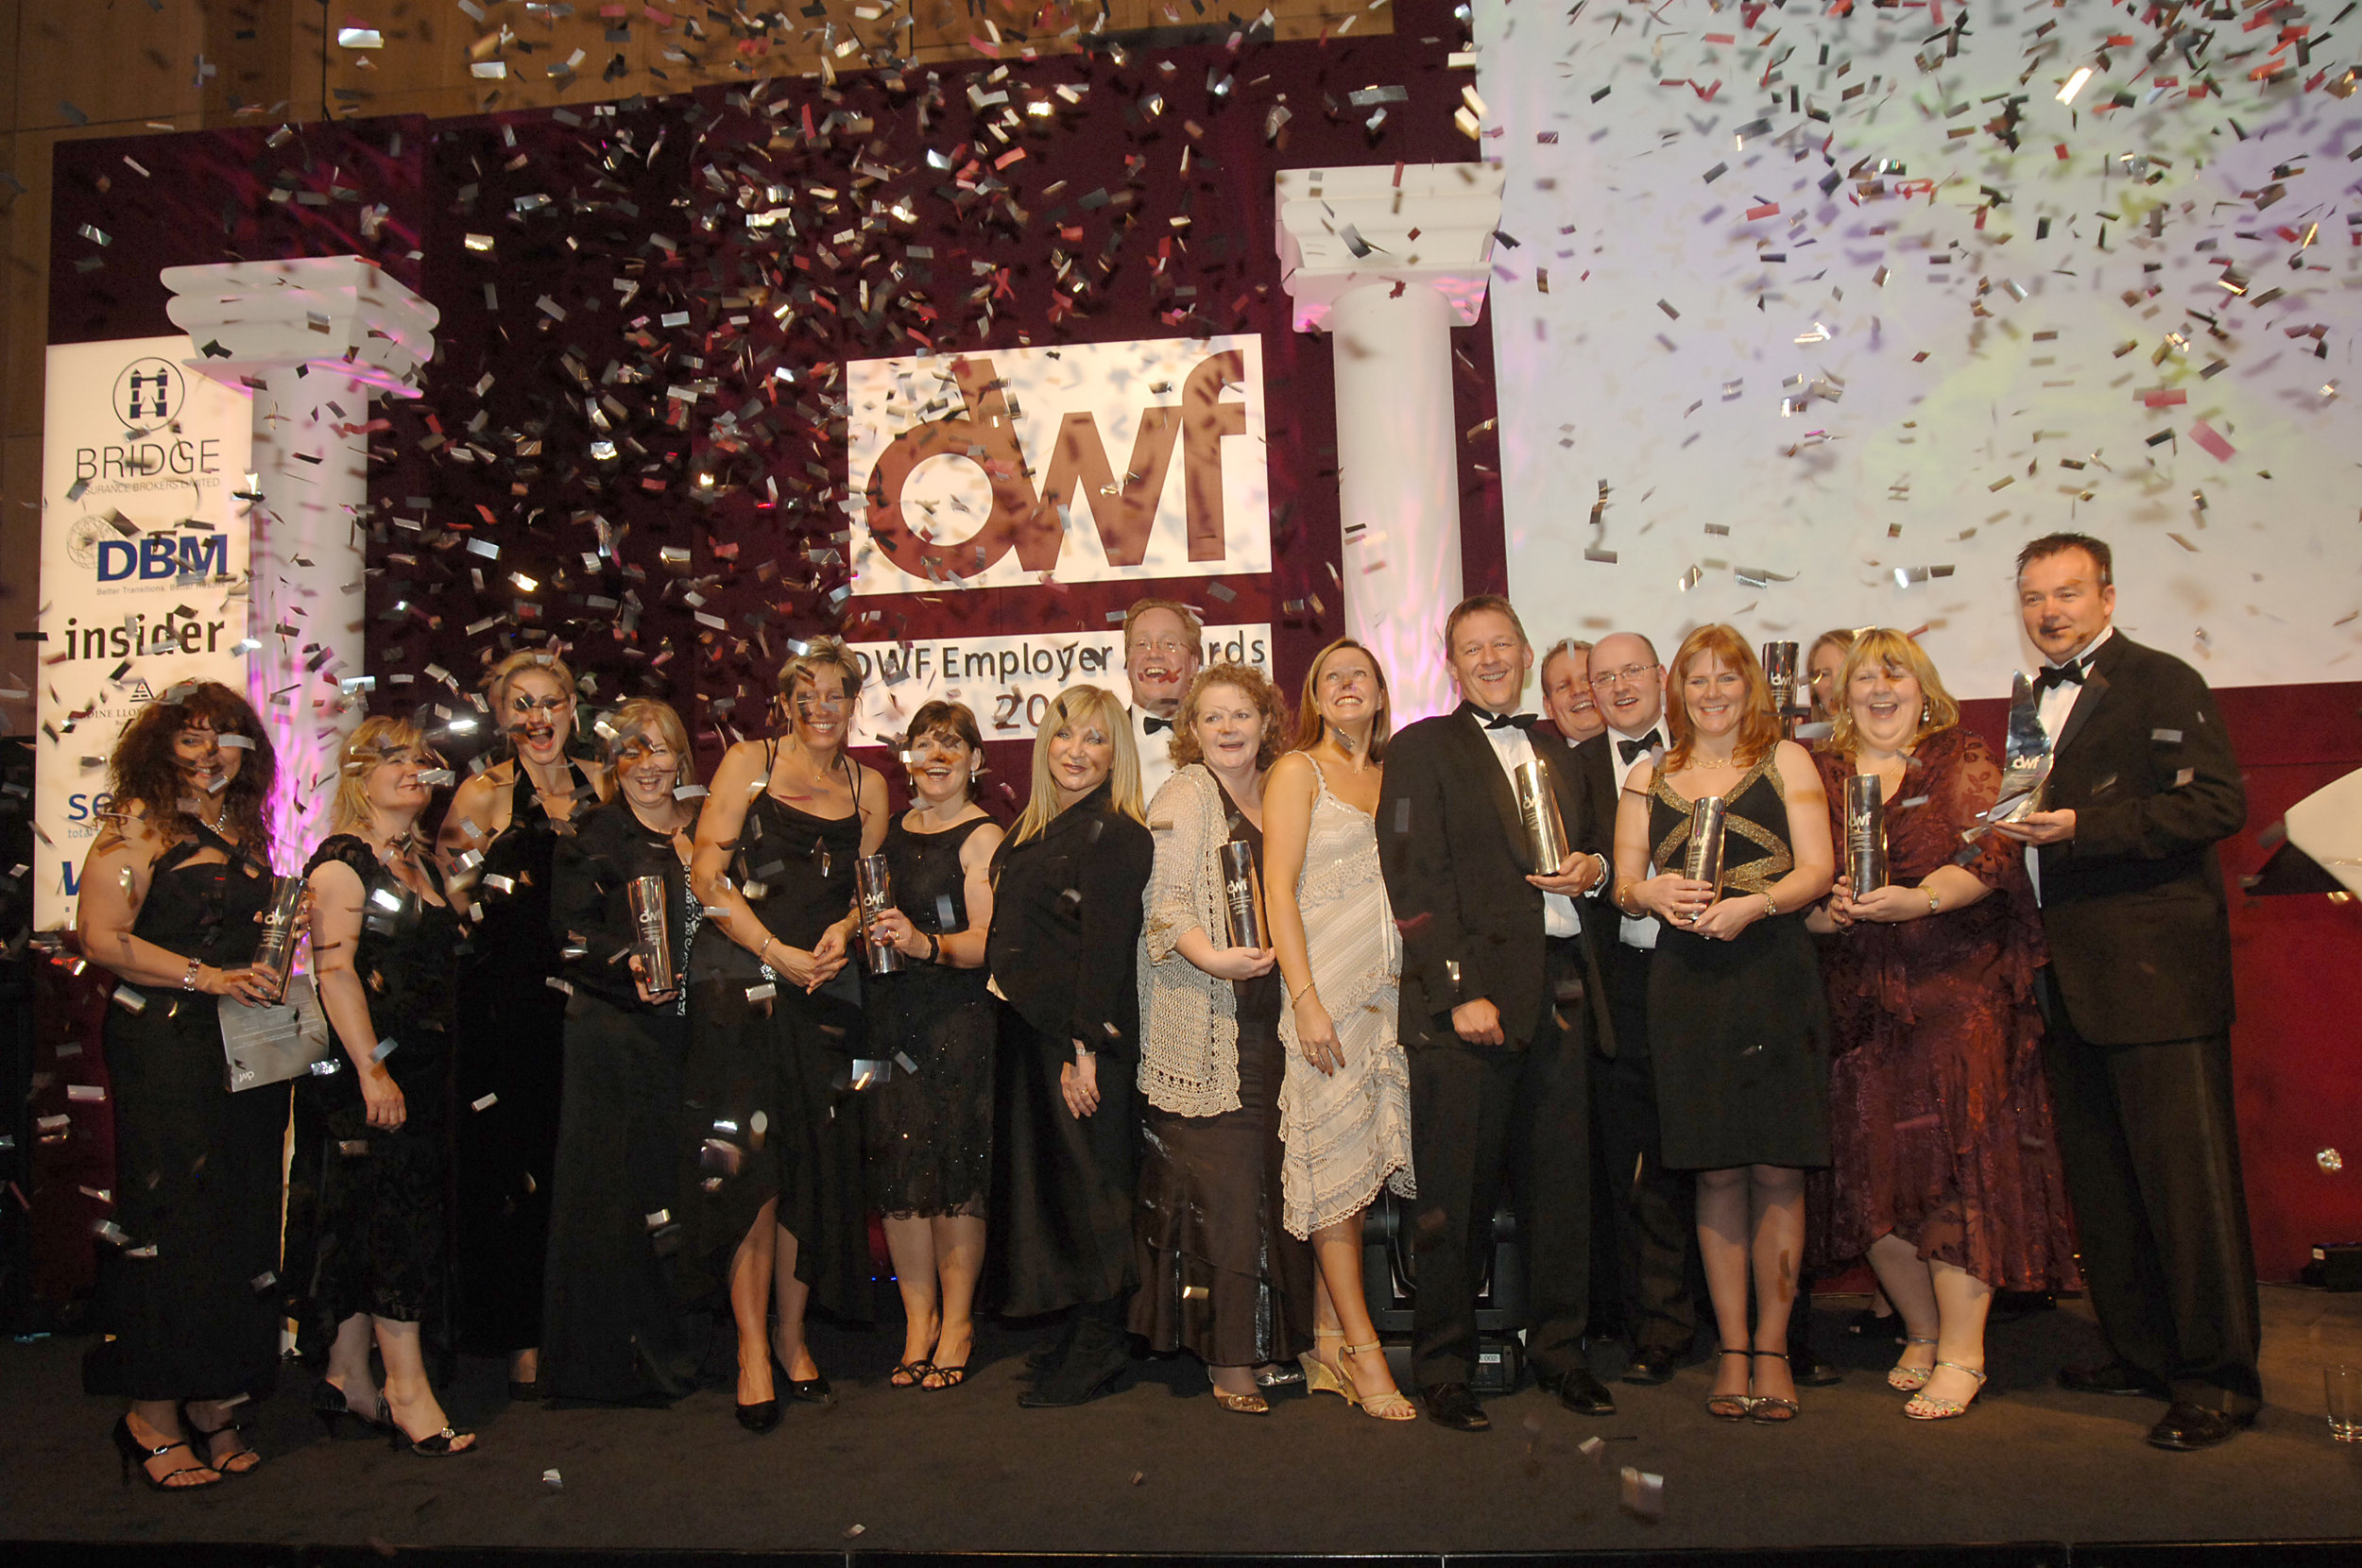 DWF Business Awards all winners with confetti 2007.jpg